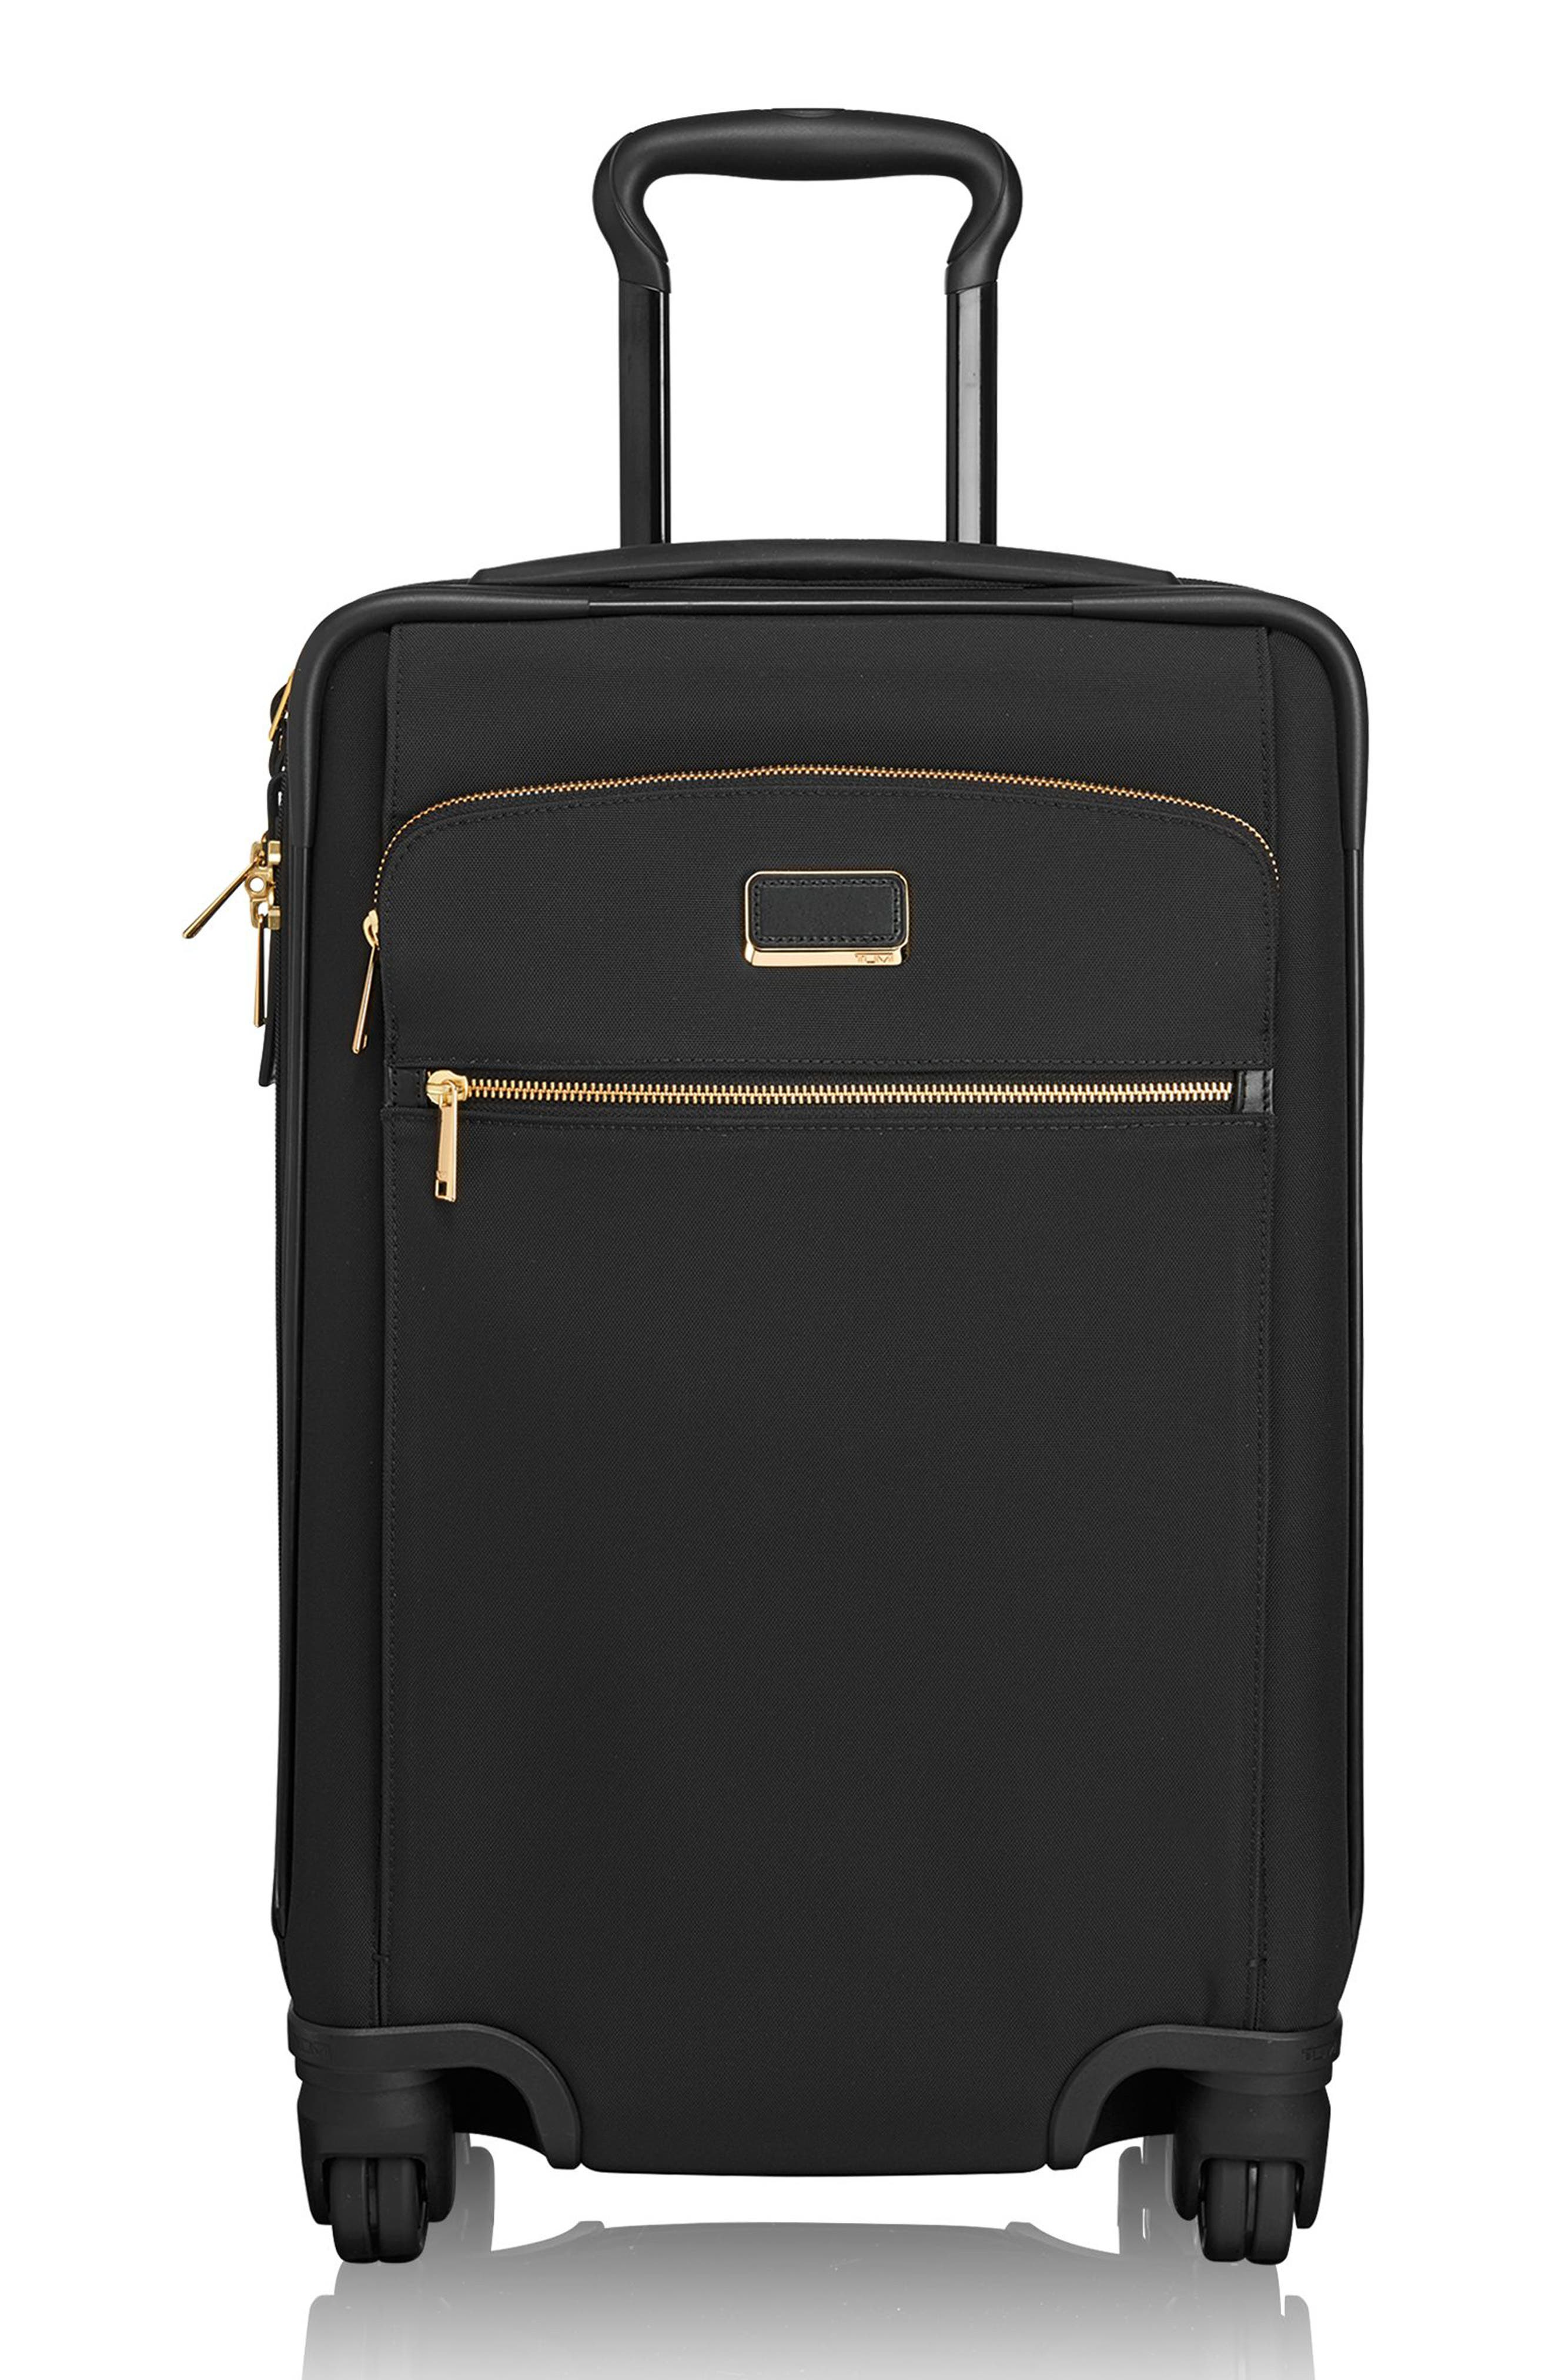 TUMI Sam International Expandable 22-Inch 4-Wheel Carry-On